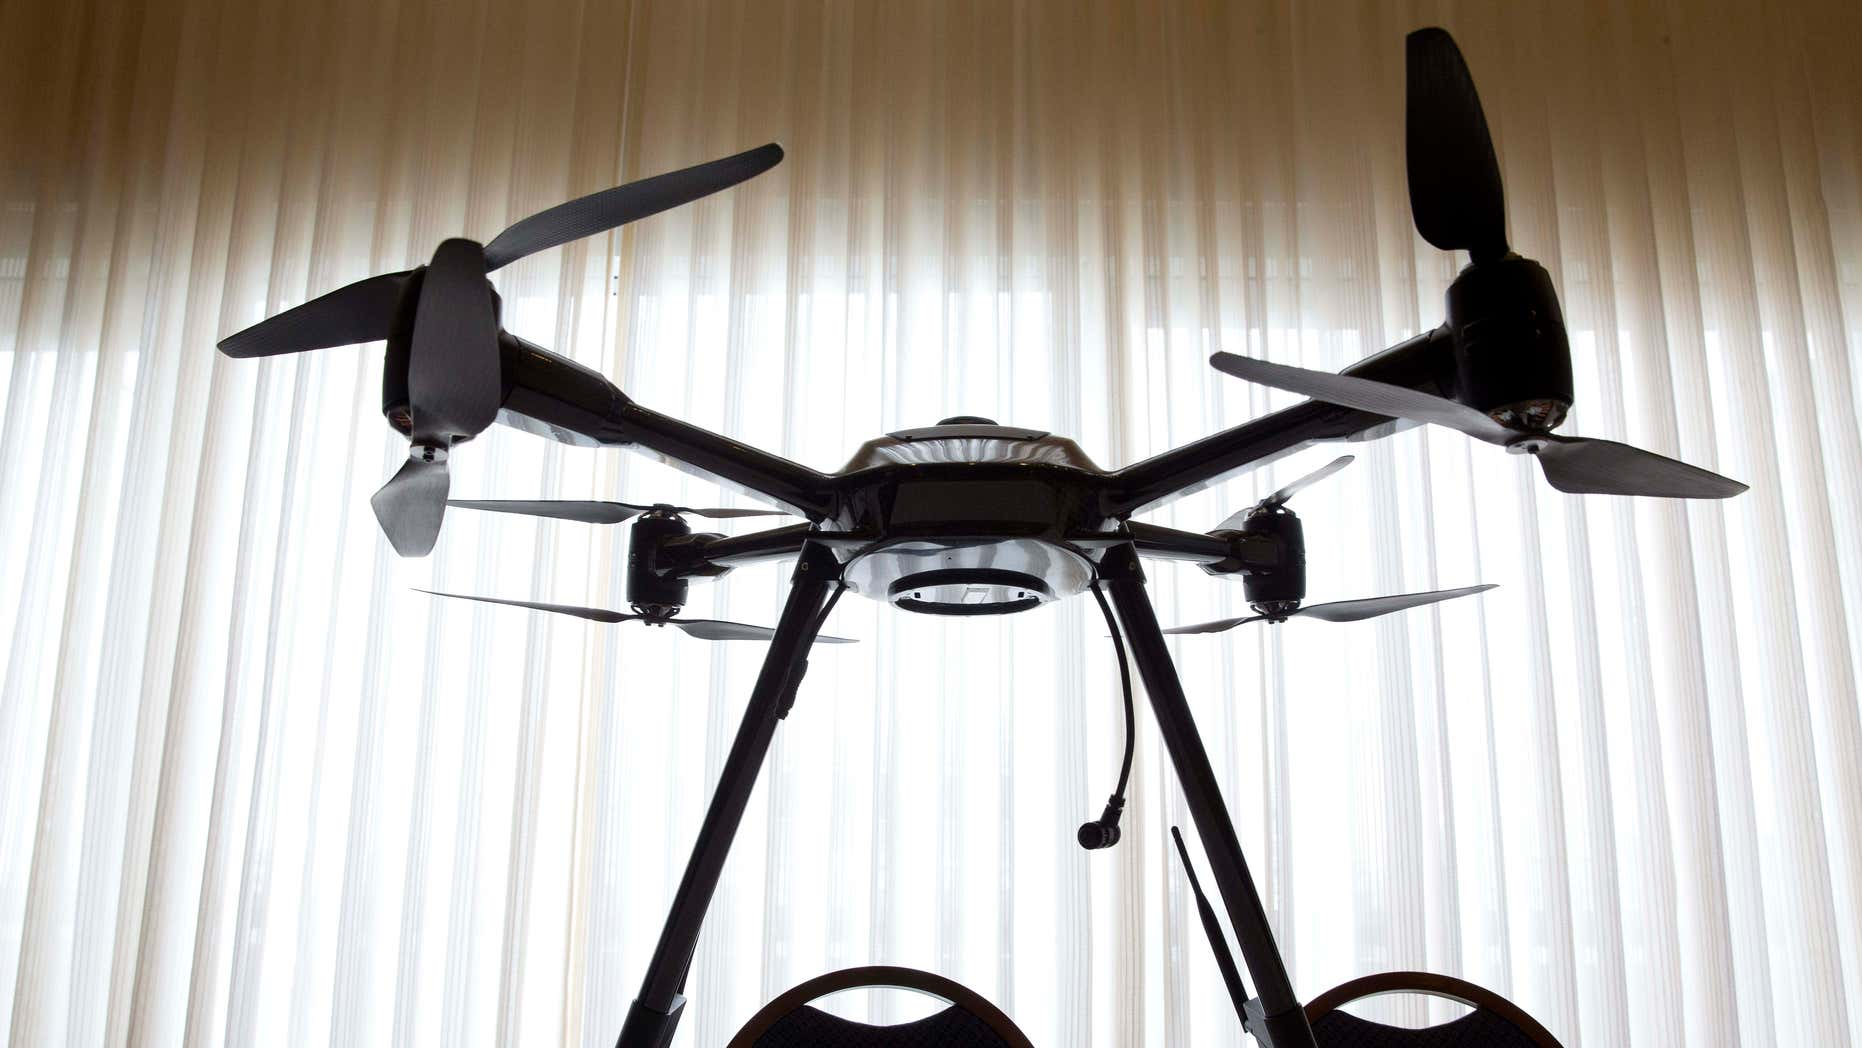 Jan. 20, 2015: Aerialtronics Altura Zenith drone is seen at an event at the National Press Club in Washington.